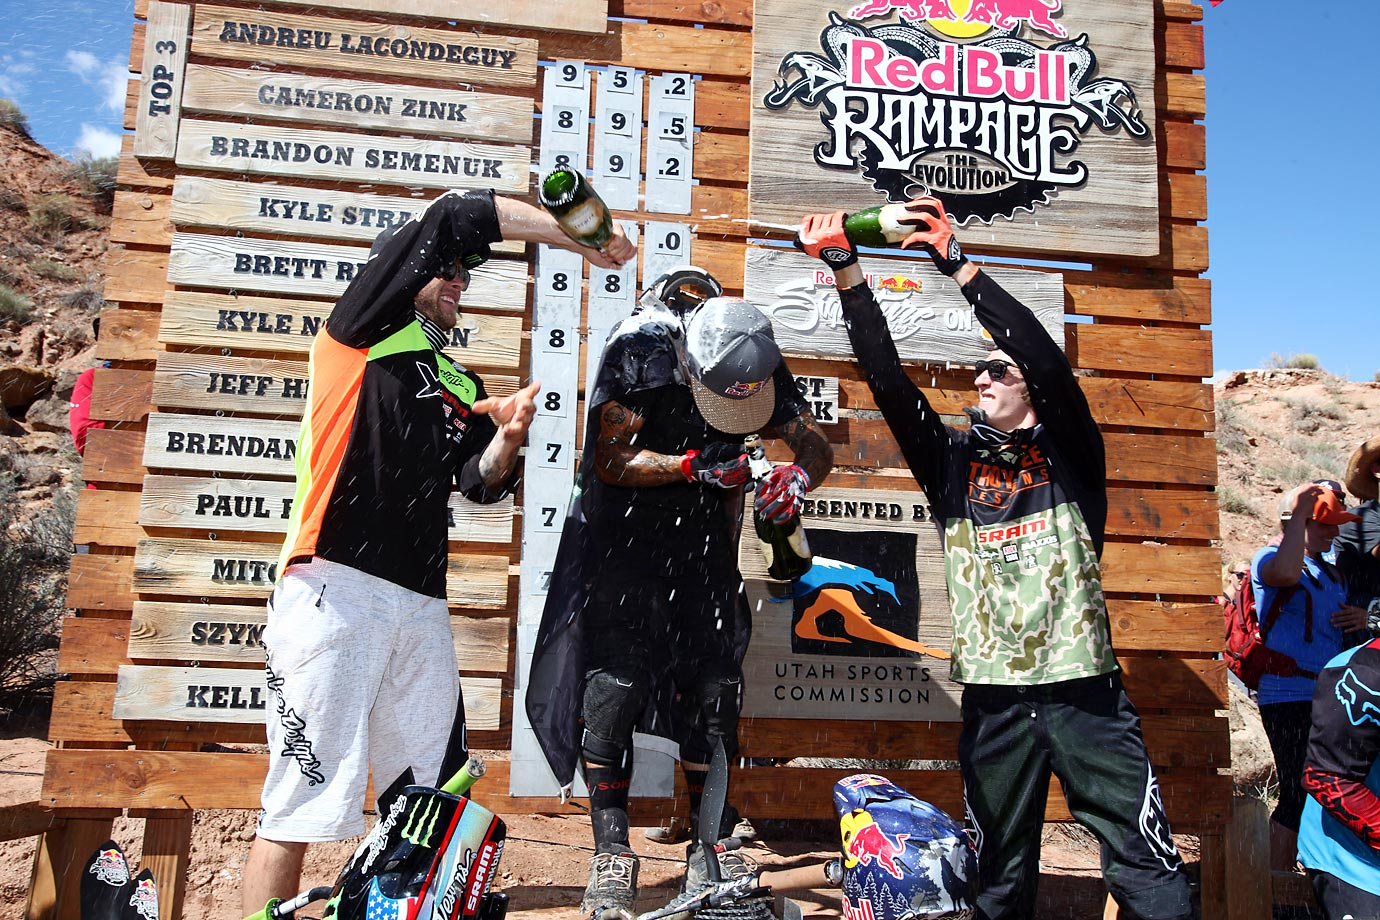 Cameron Zink, Andreu Lacondeguy, and Brandon Semenuk celebrate on the podium.